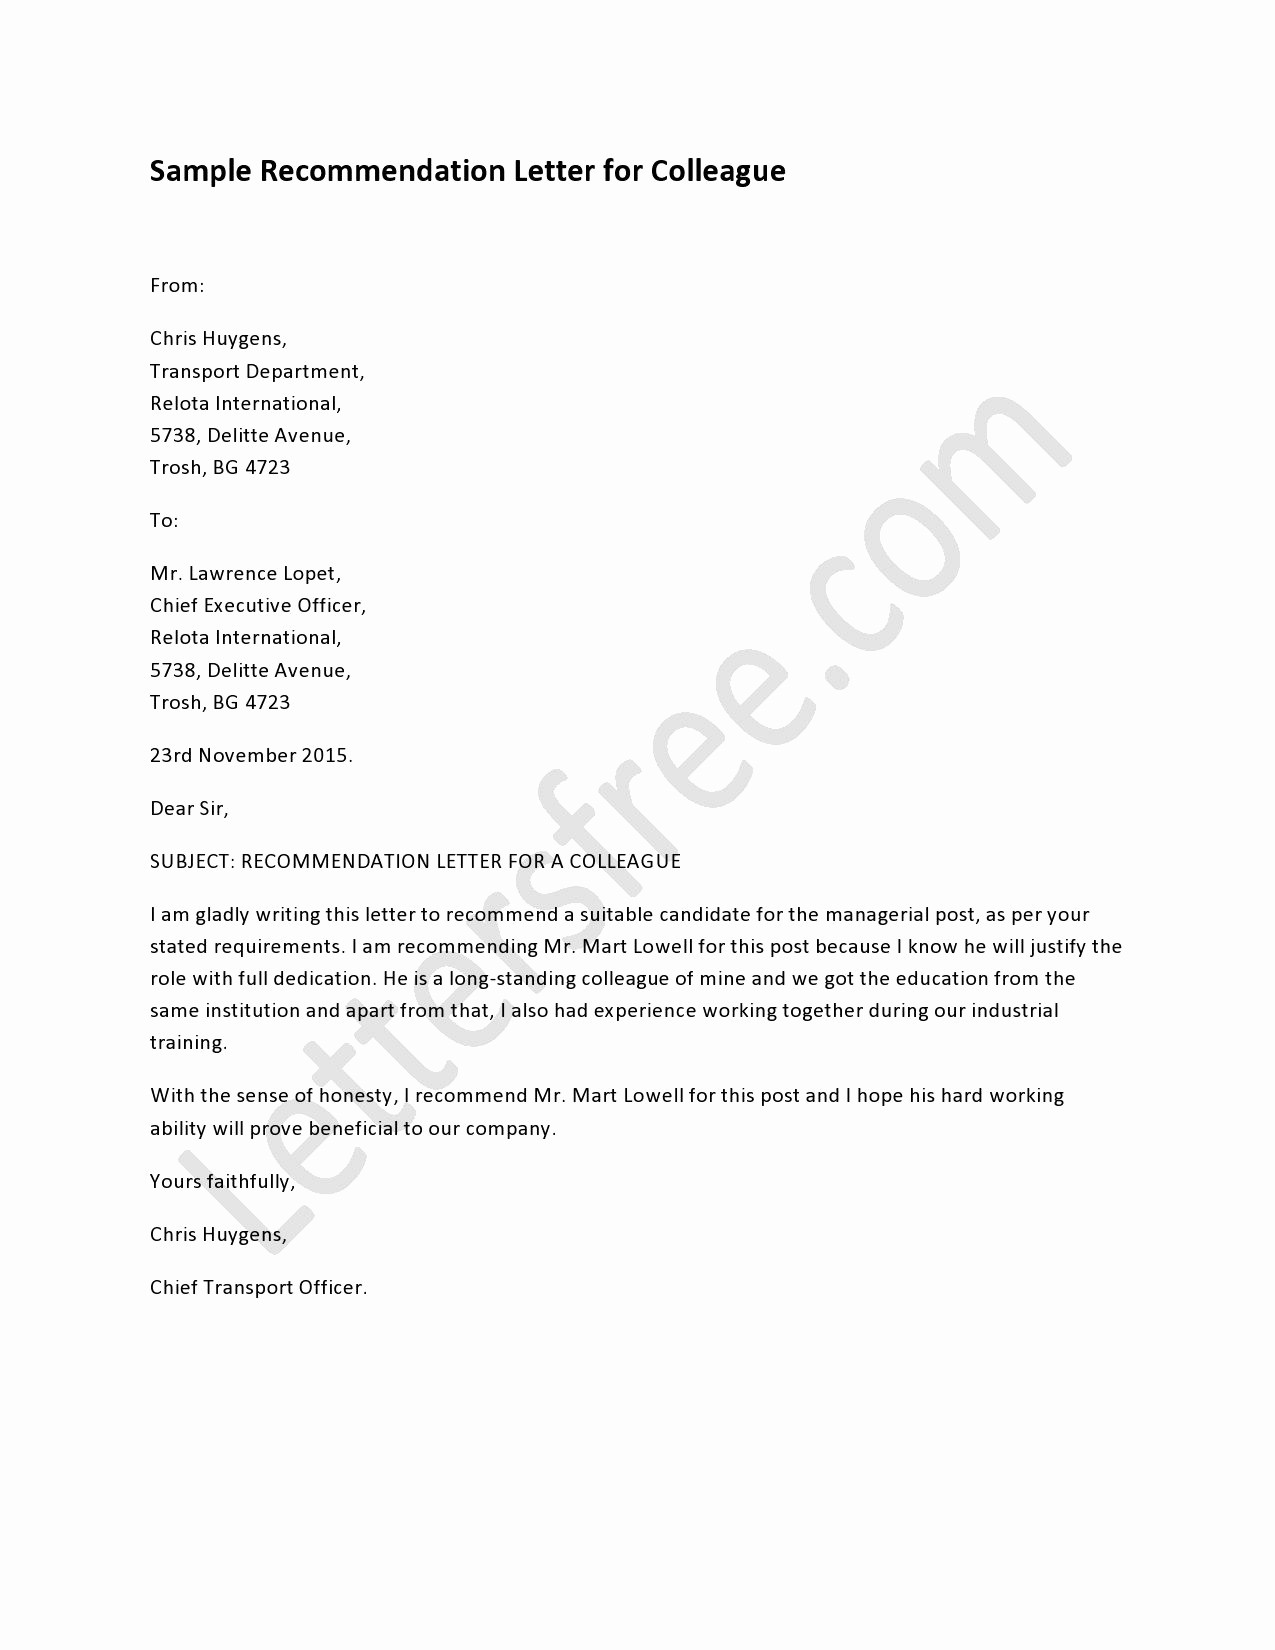 Example Of A Recommendation Letter Beautiful Re Mendation Letter for Colleague